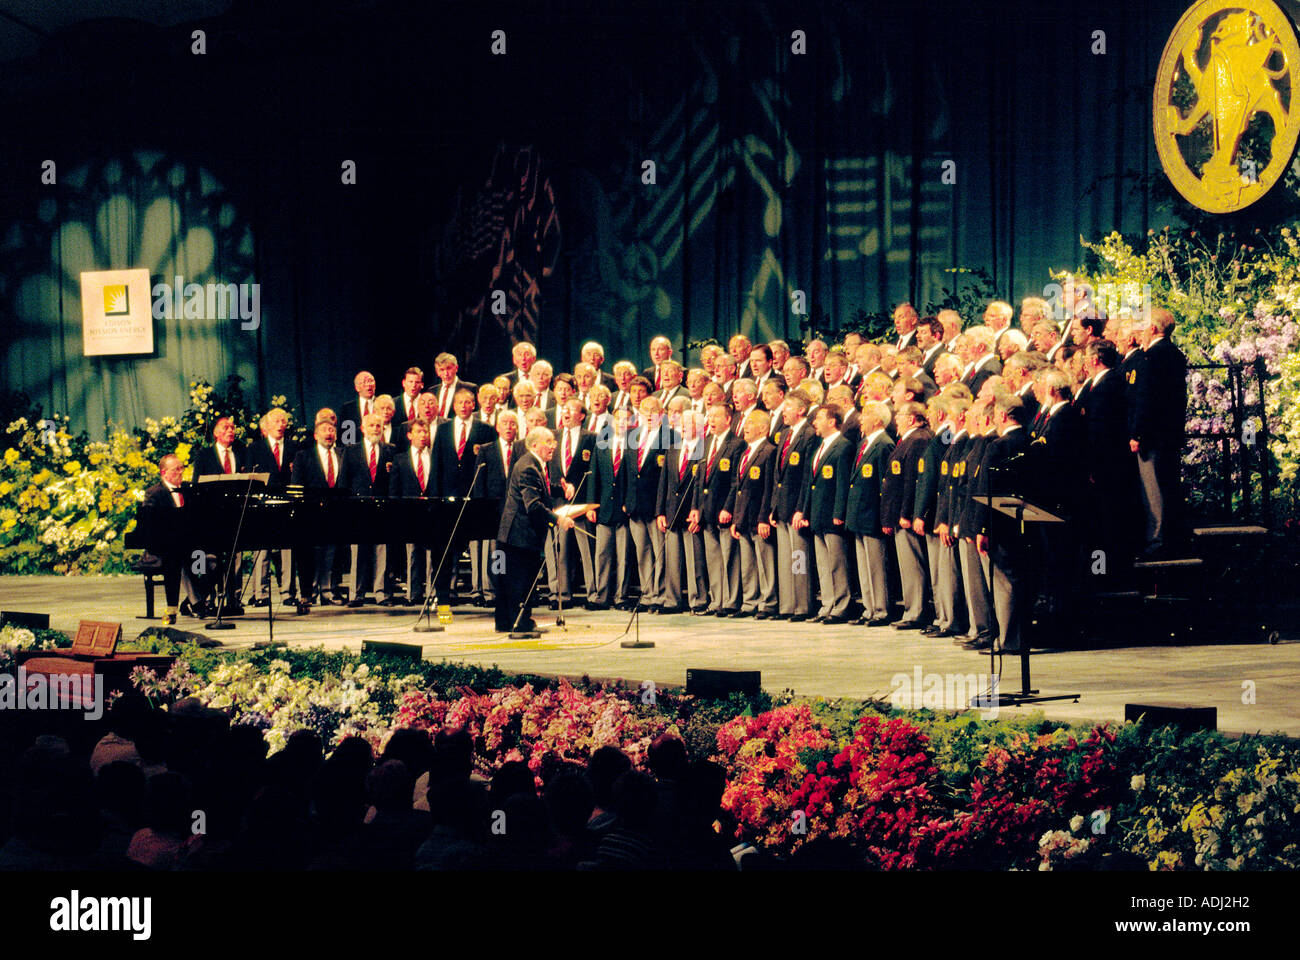 Welsh male voice choir singing on stage at the annual Llangollen International Eisteddfod, Clwyd, Wales, UK - Stock Image